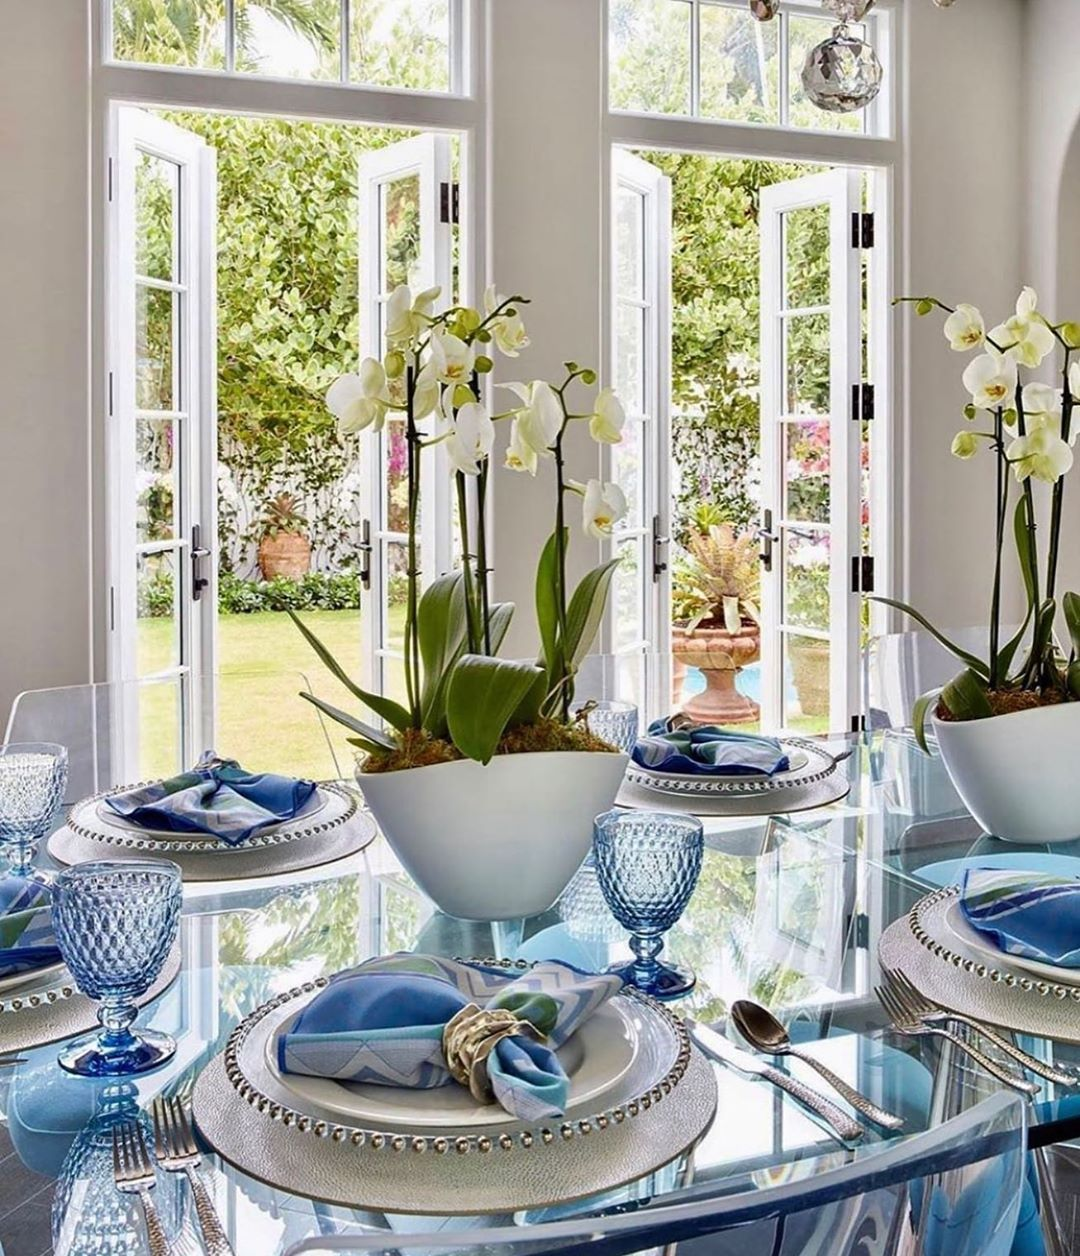 Looking forward to the weekend☀️Saturday safe! . . . #dinningtabletops #dinningtabletop #hostess #homedecor #tablesettingideas #sunshine #tablescapes #tablescapewednesday #inspohome